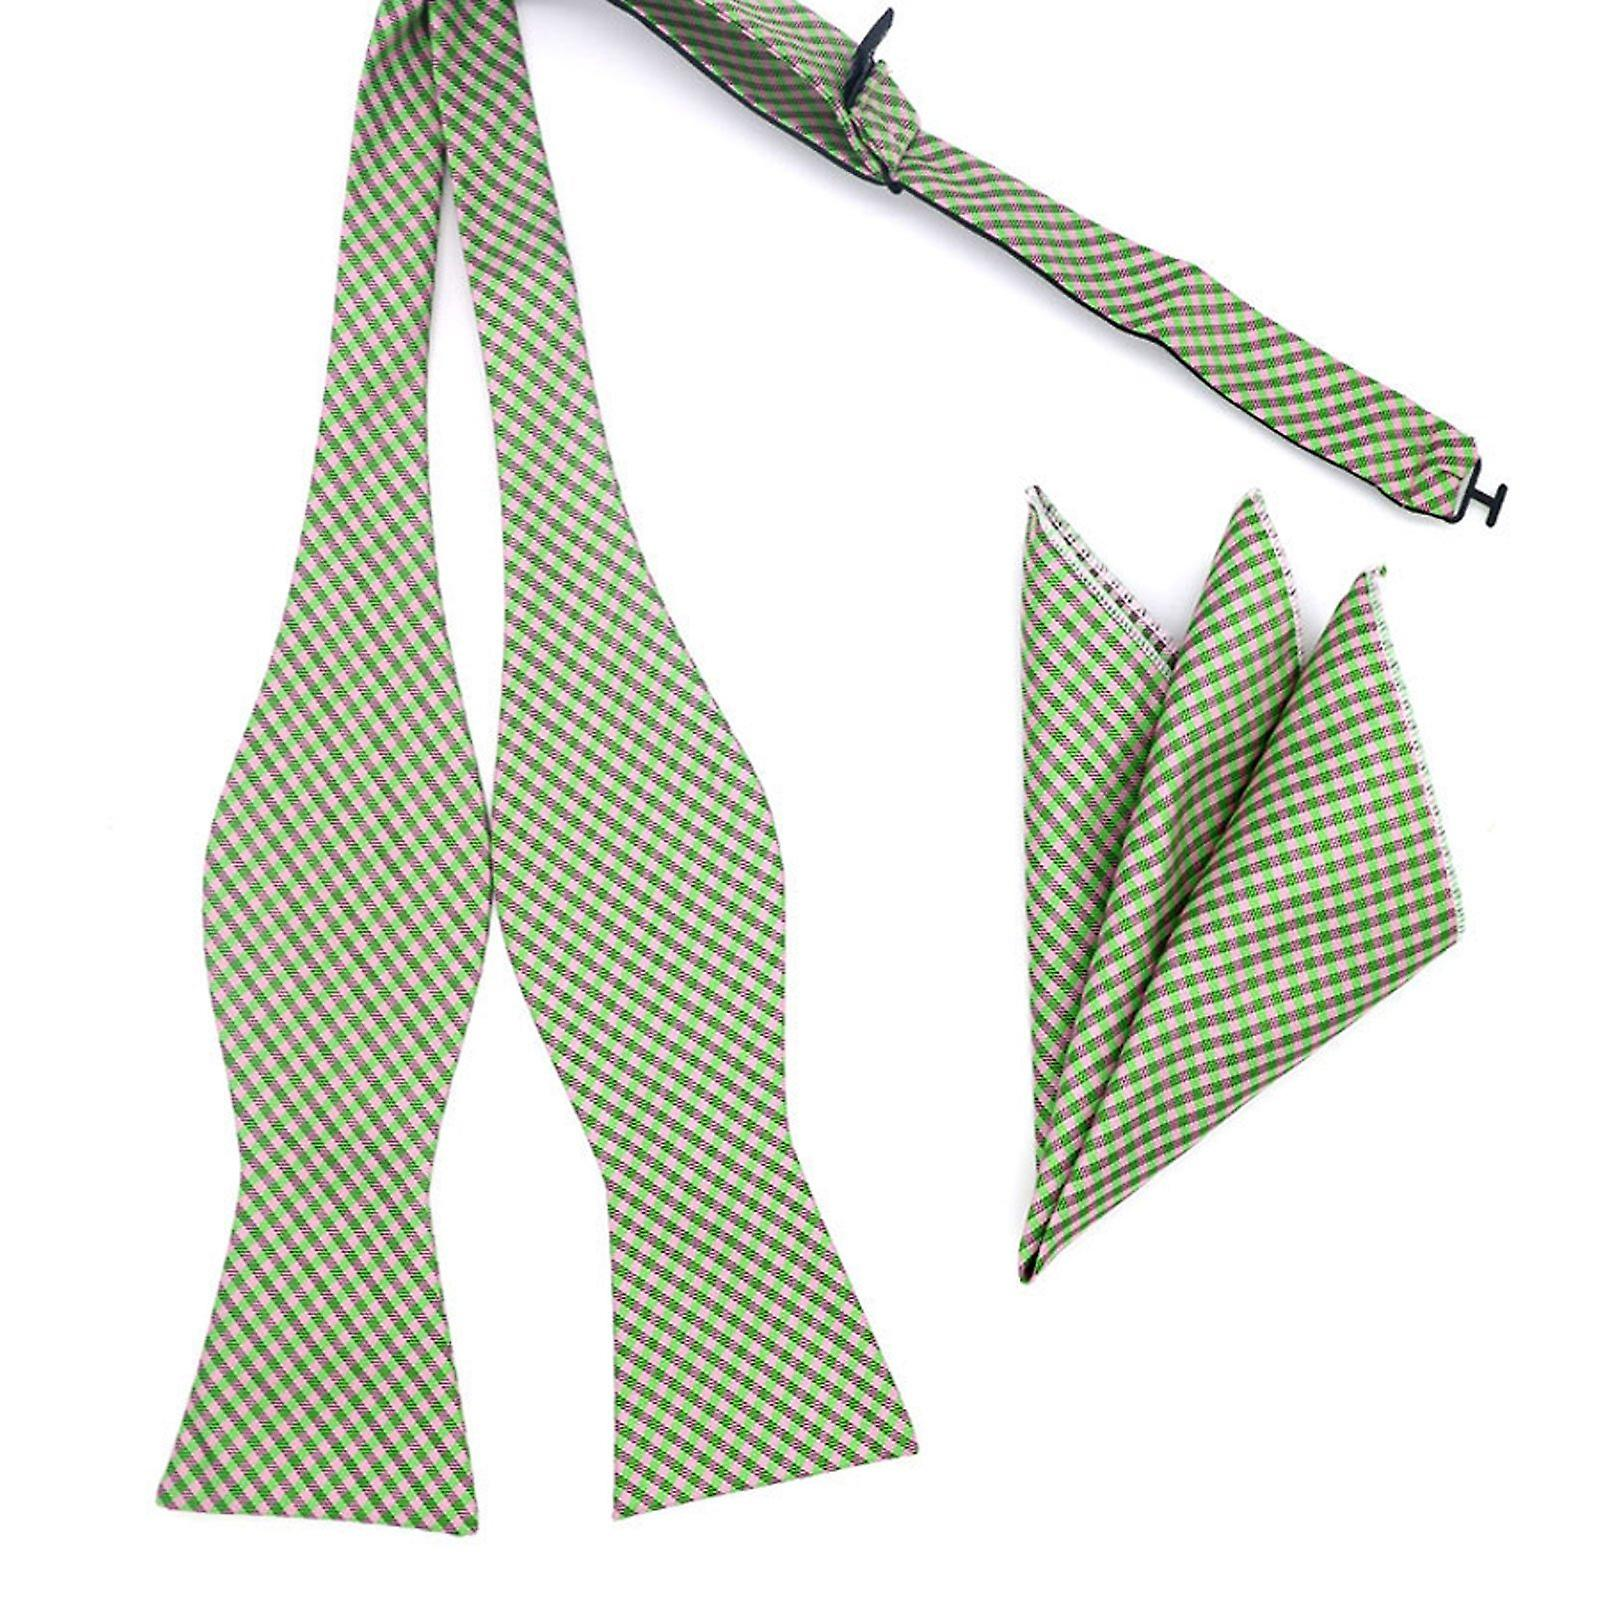 Pink & green gingham bow tie & pocket square hanky set